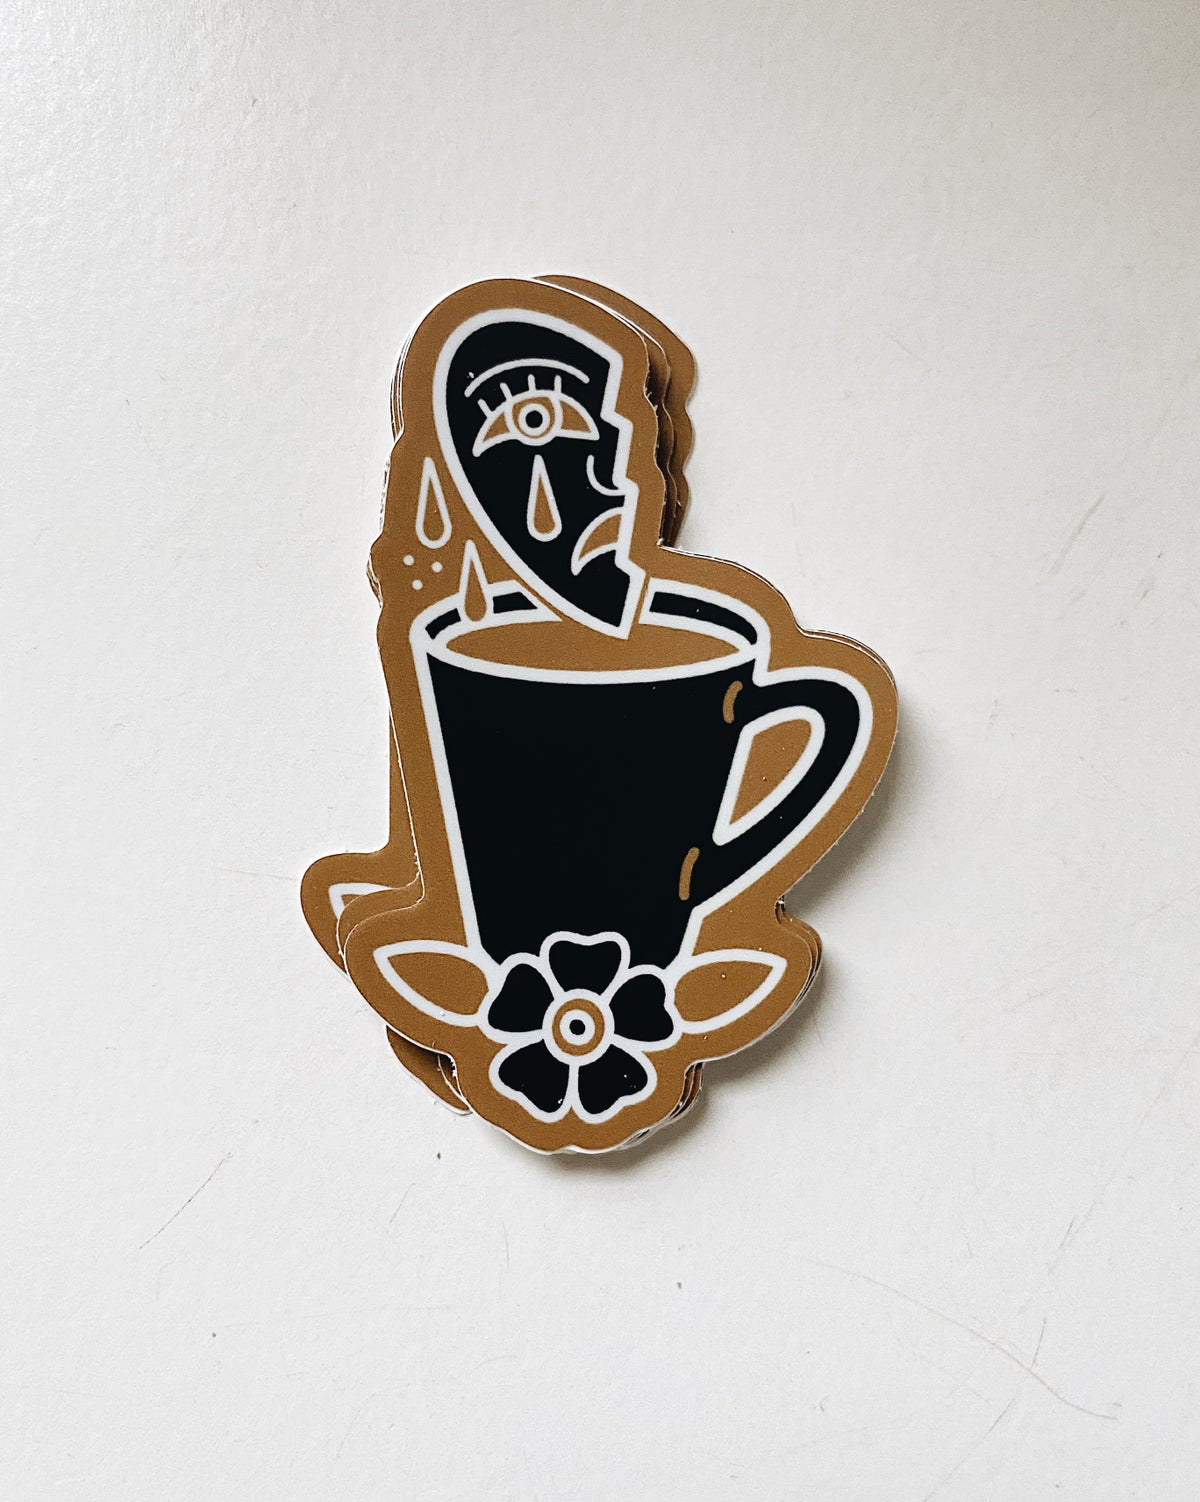 Image of Crying Heart Coffee Cup Sticker